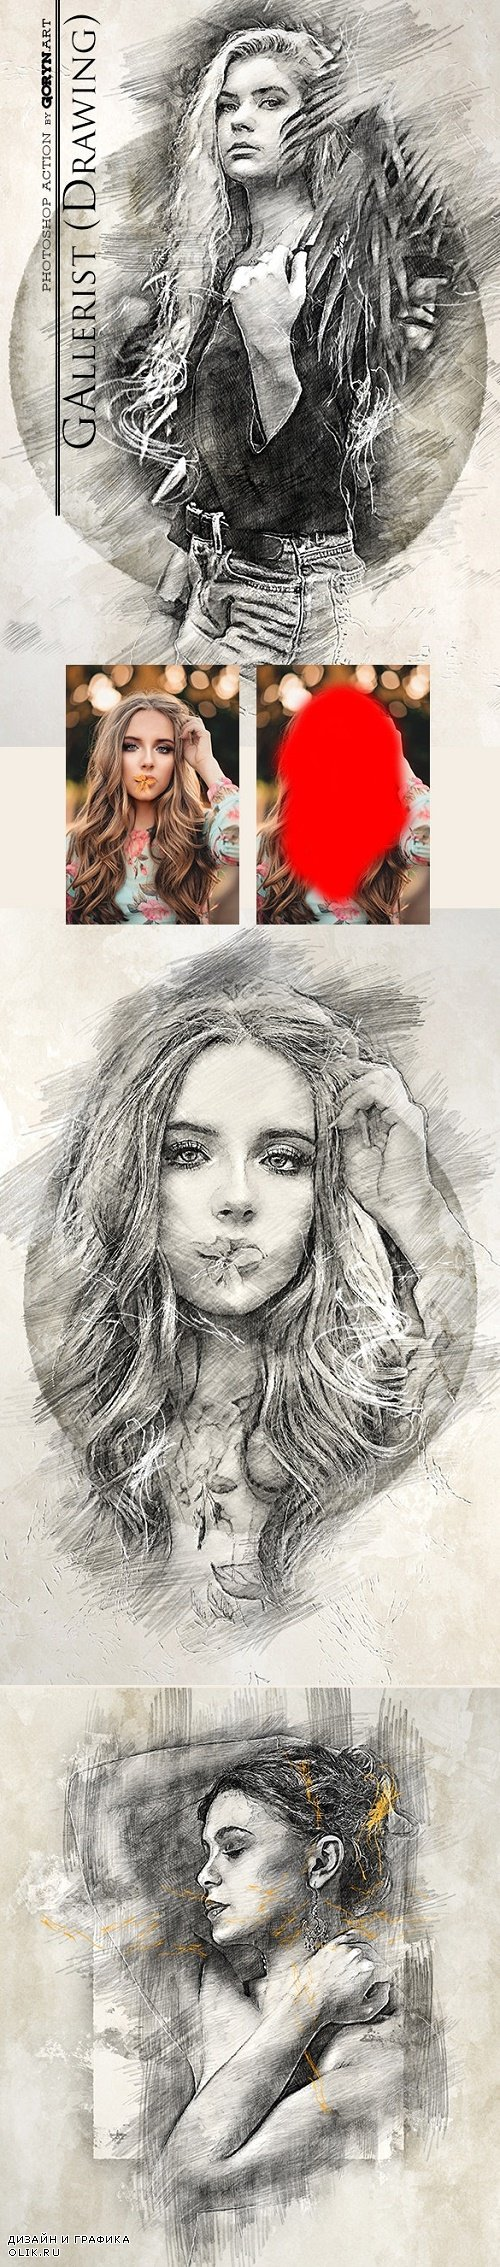 GAllerist (Drawing) Photoshop Action 23959433